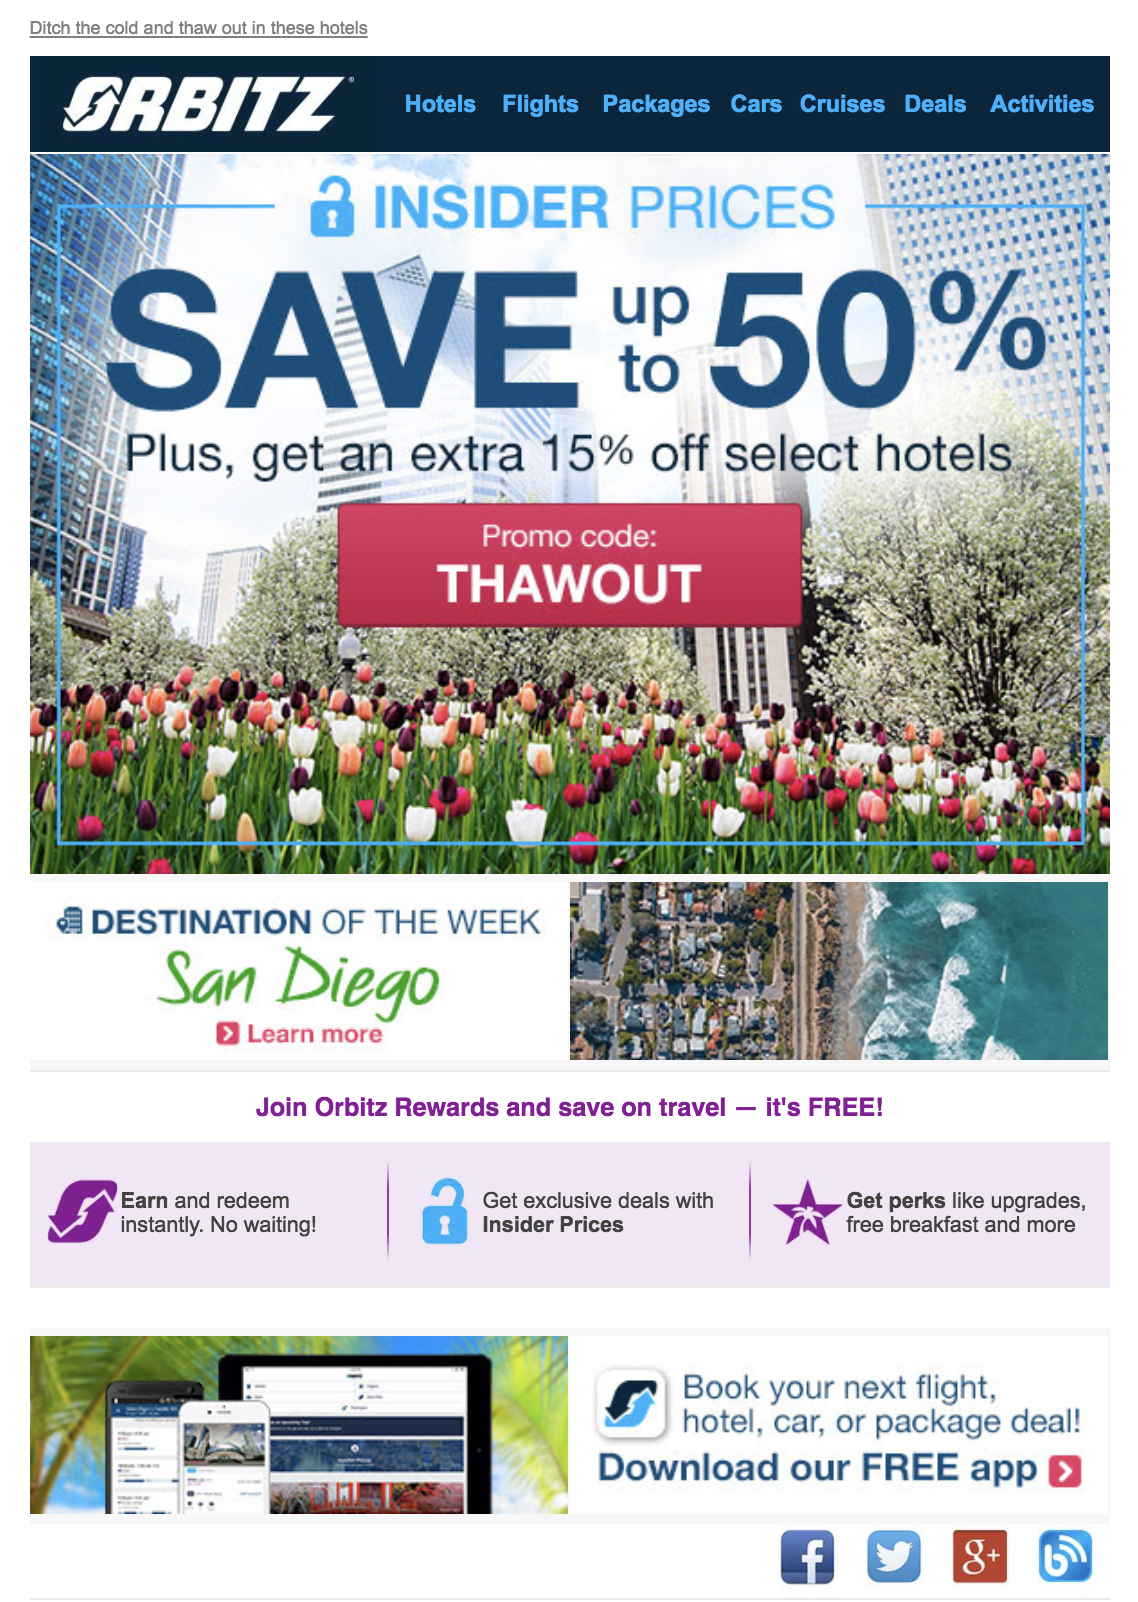 Orbitz transactional email marketing